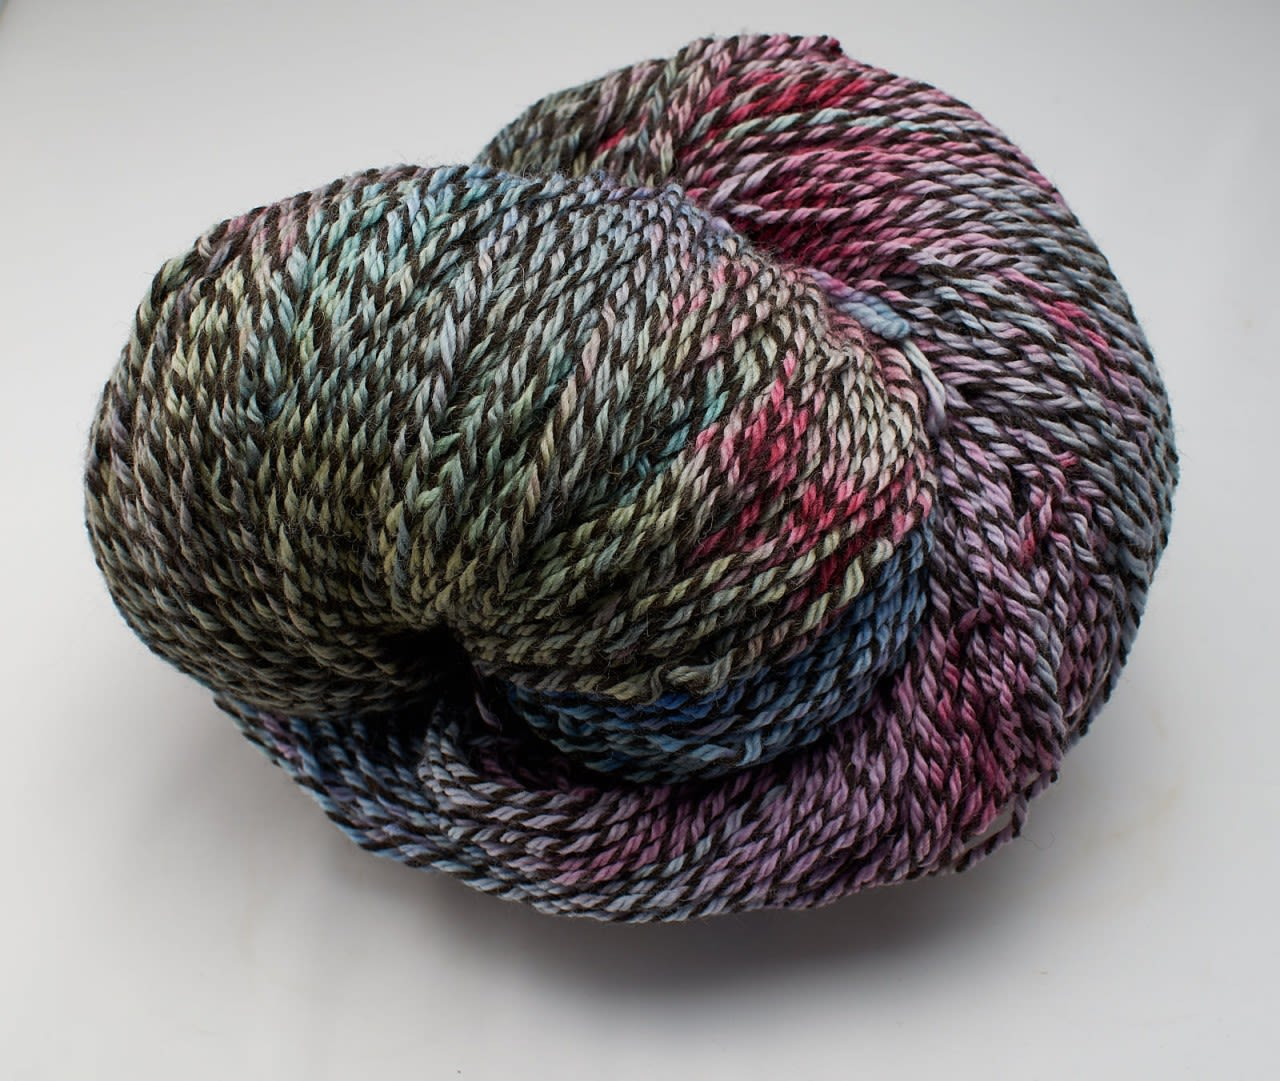 Large Hullabaloo 560g skein - Monet